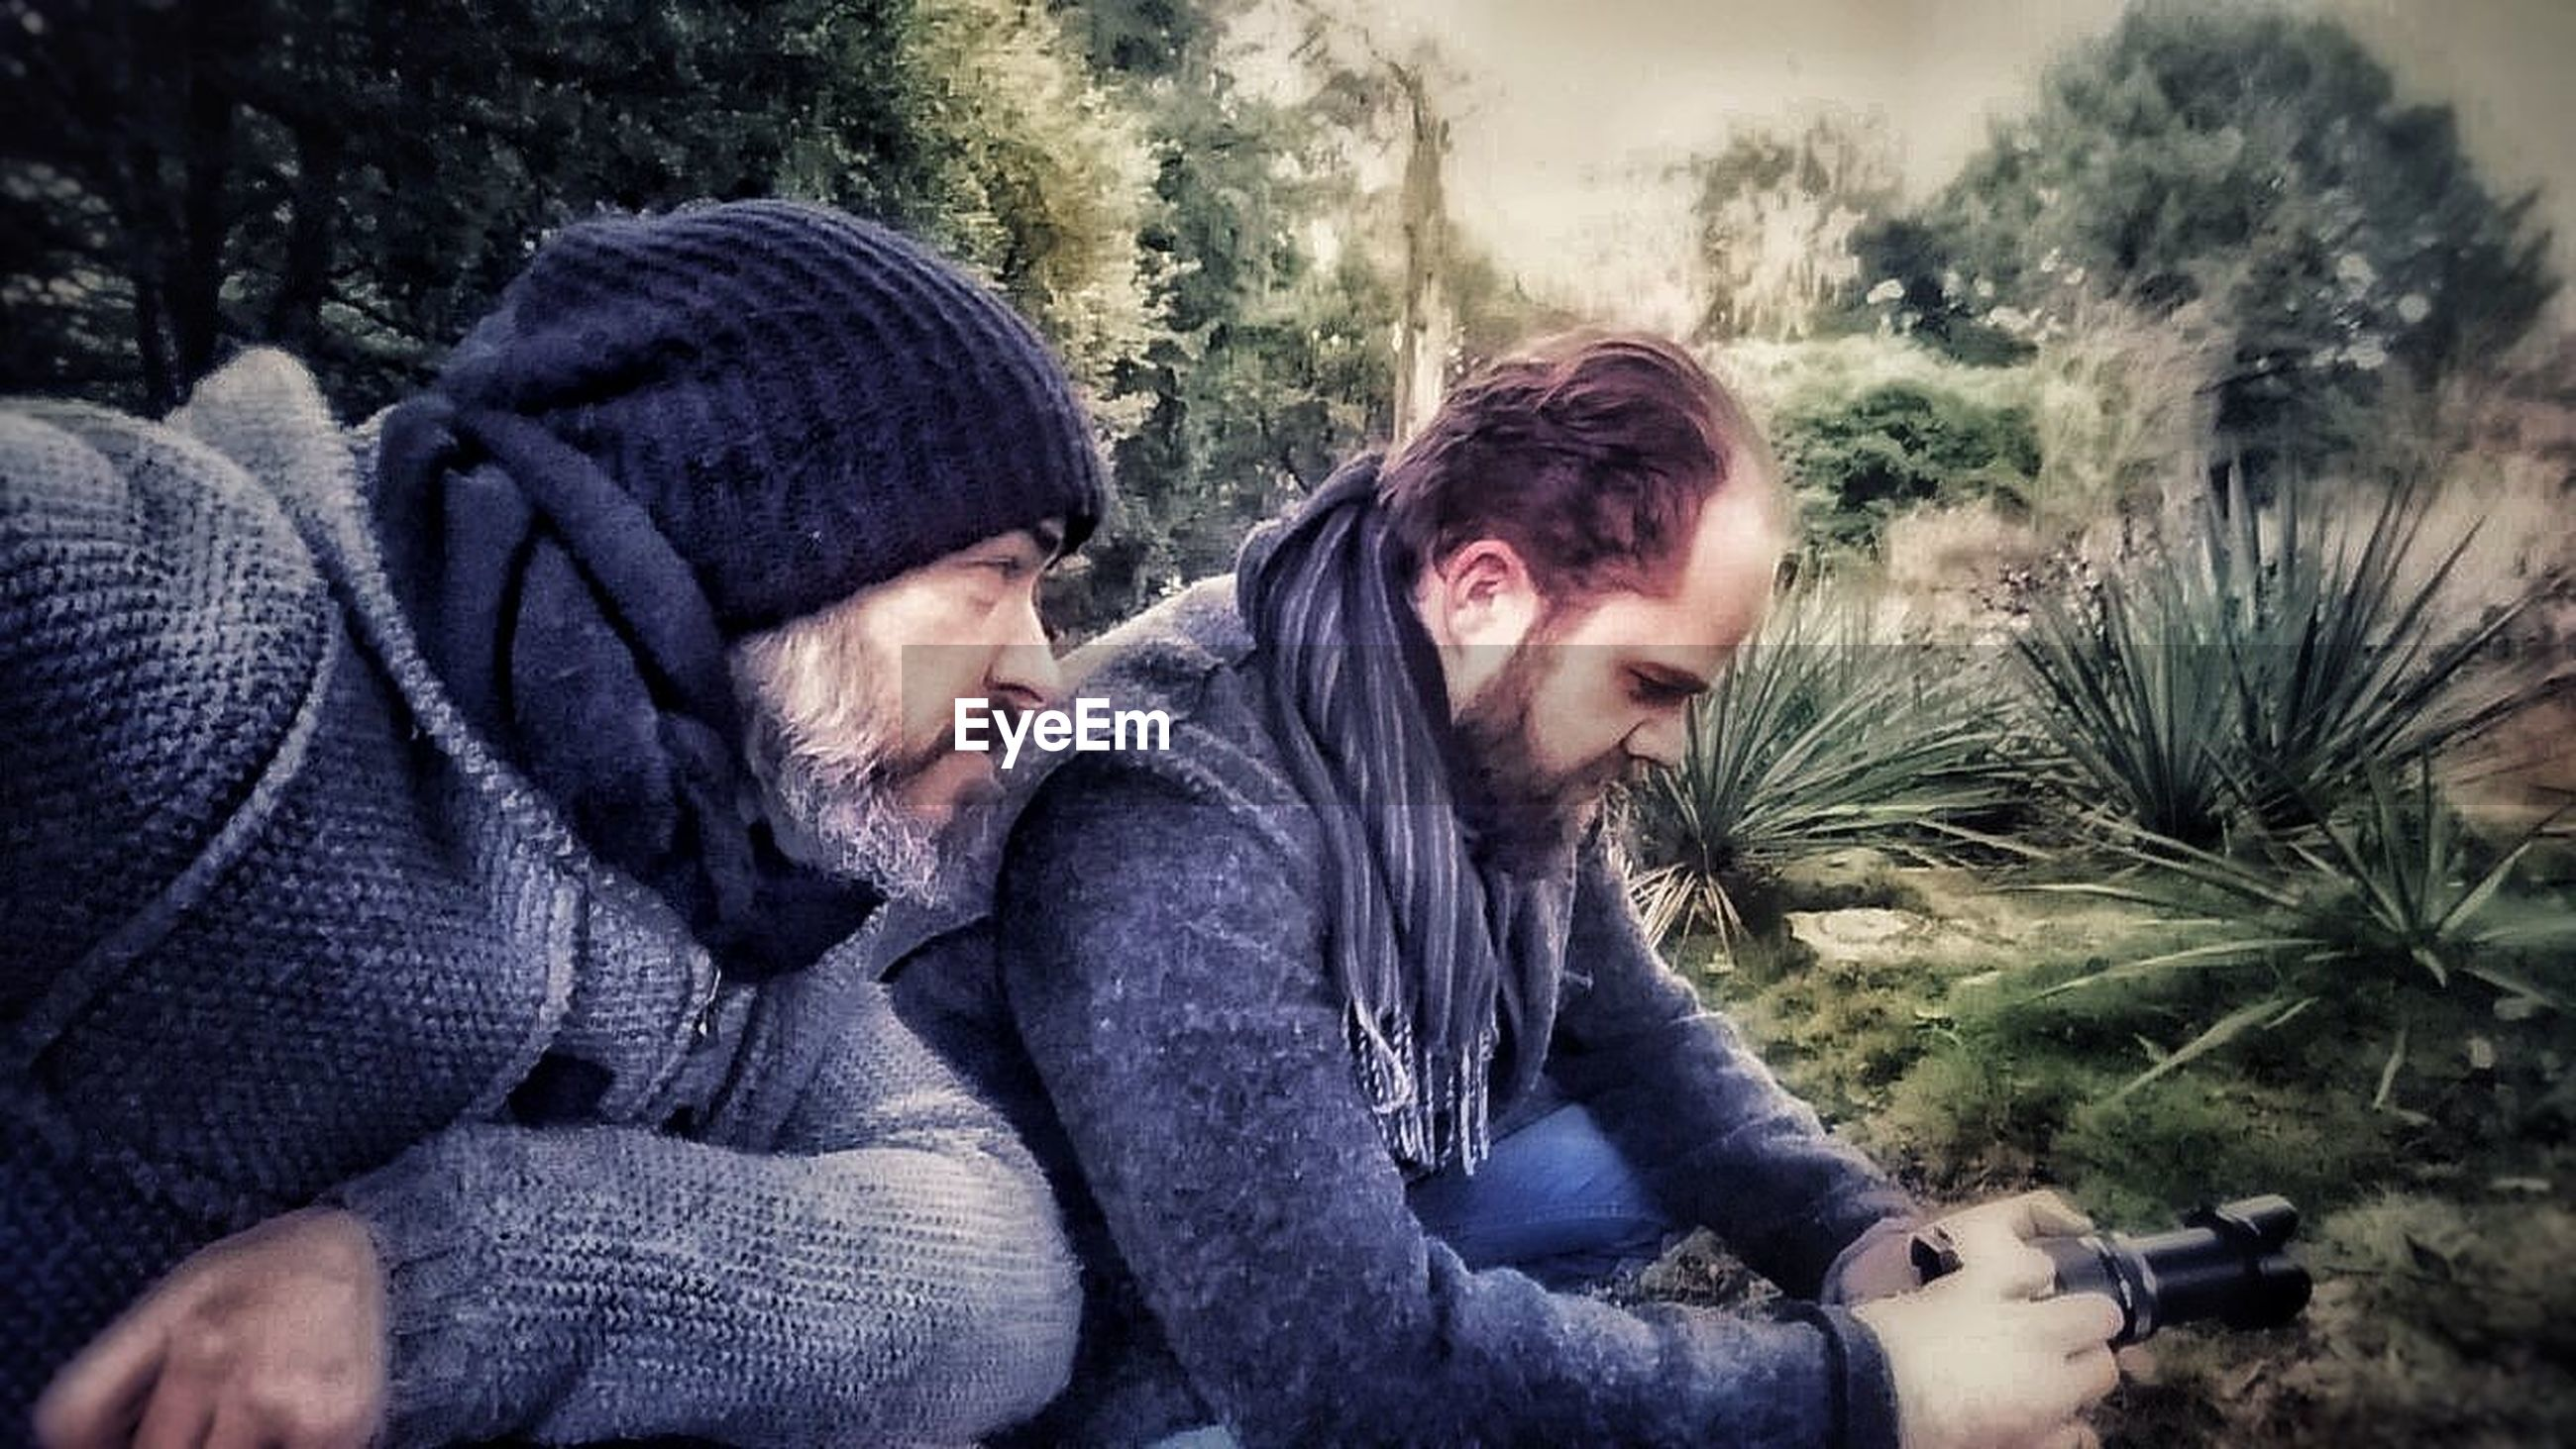 two people, togetherness, men, adult, outdoors, sitting, friendship, day, beard, bonding, young adult, people, nature, adults only, only men, tree, relationship difficulties, warm clothing